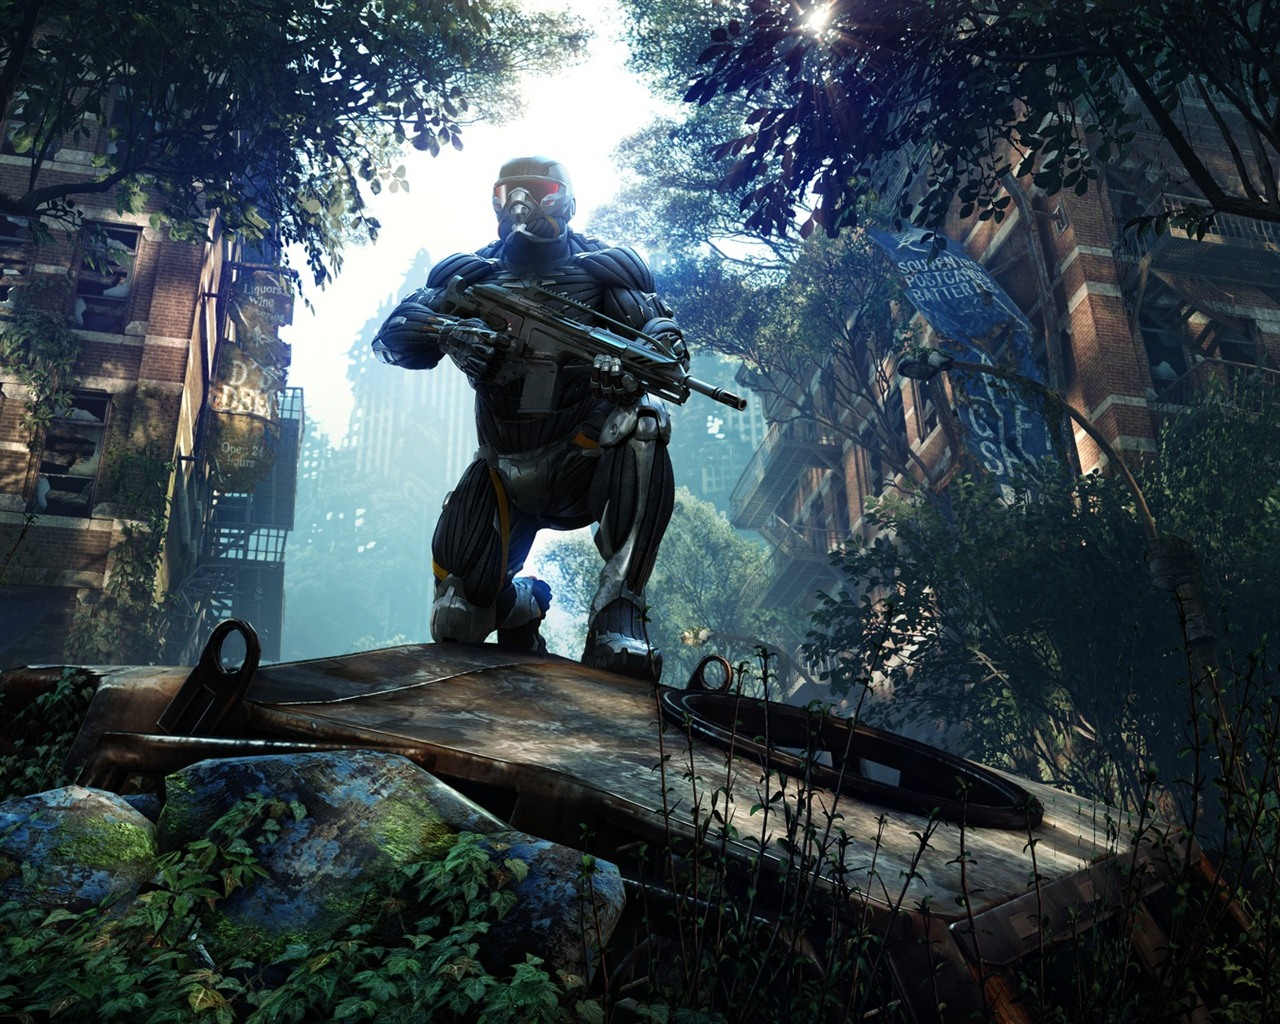 Crysis 3 2013 Video Game 4k Hd Desktop Wallpaper For 4k: 1280x1024 Wallpaper Download